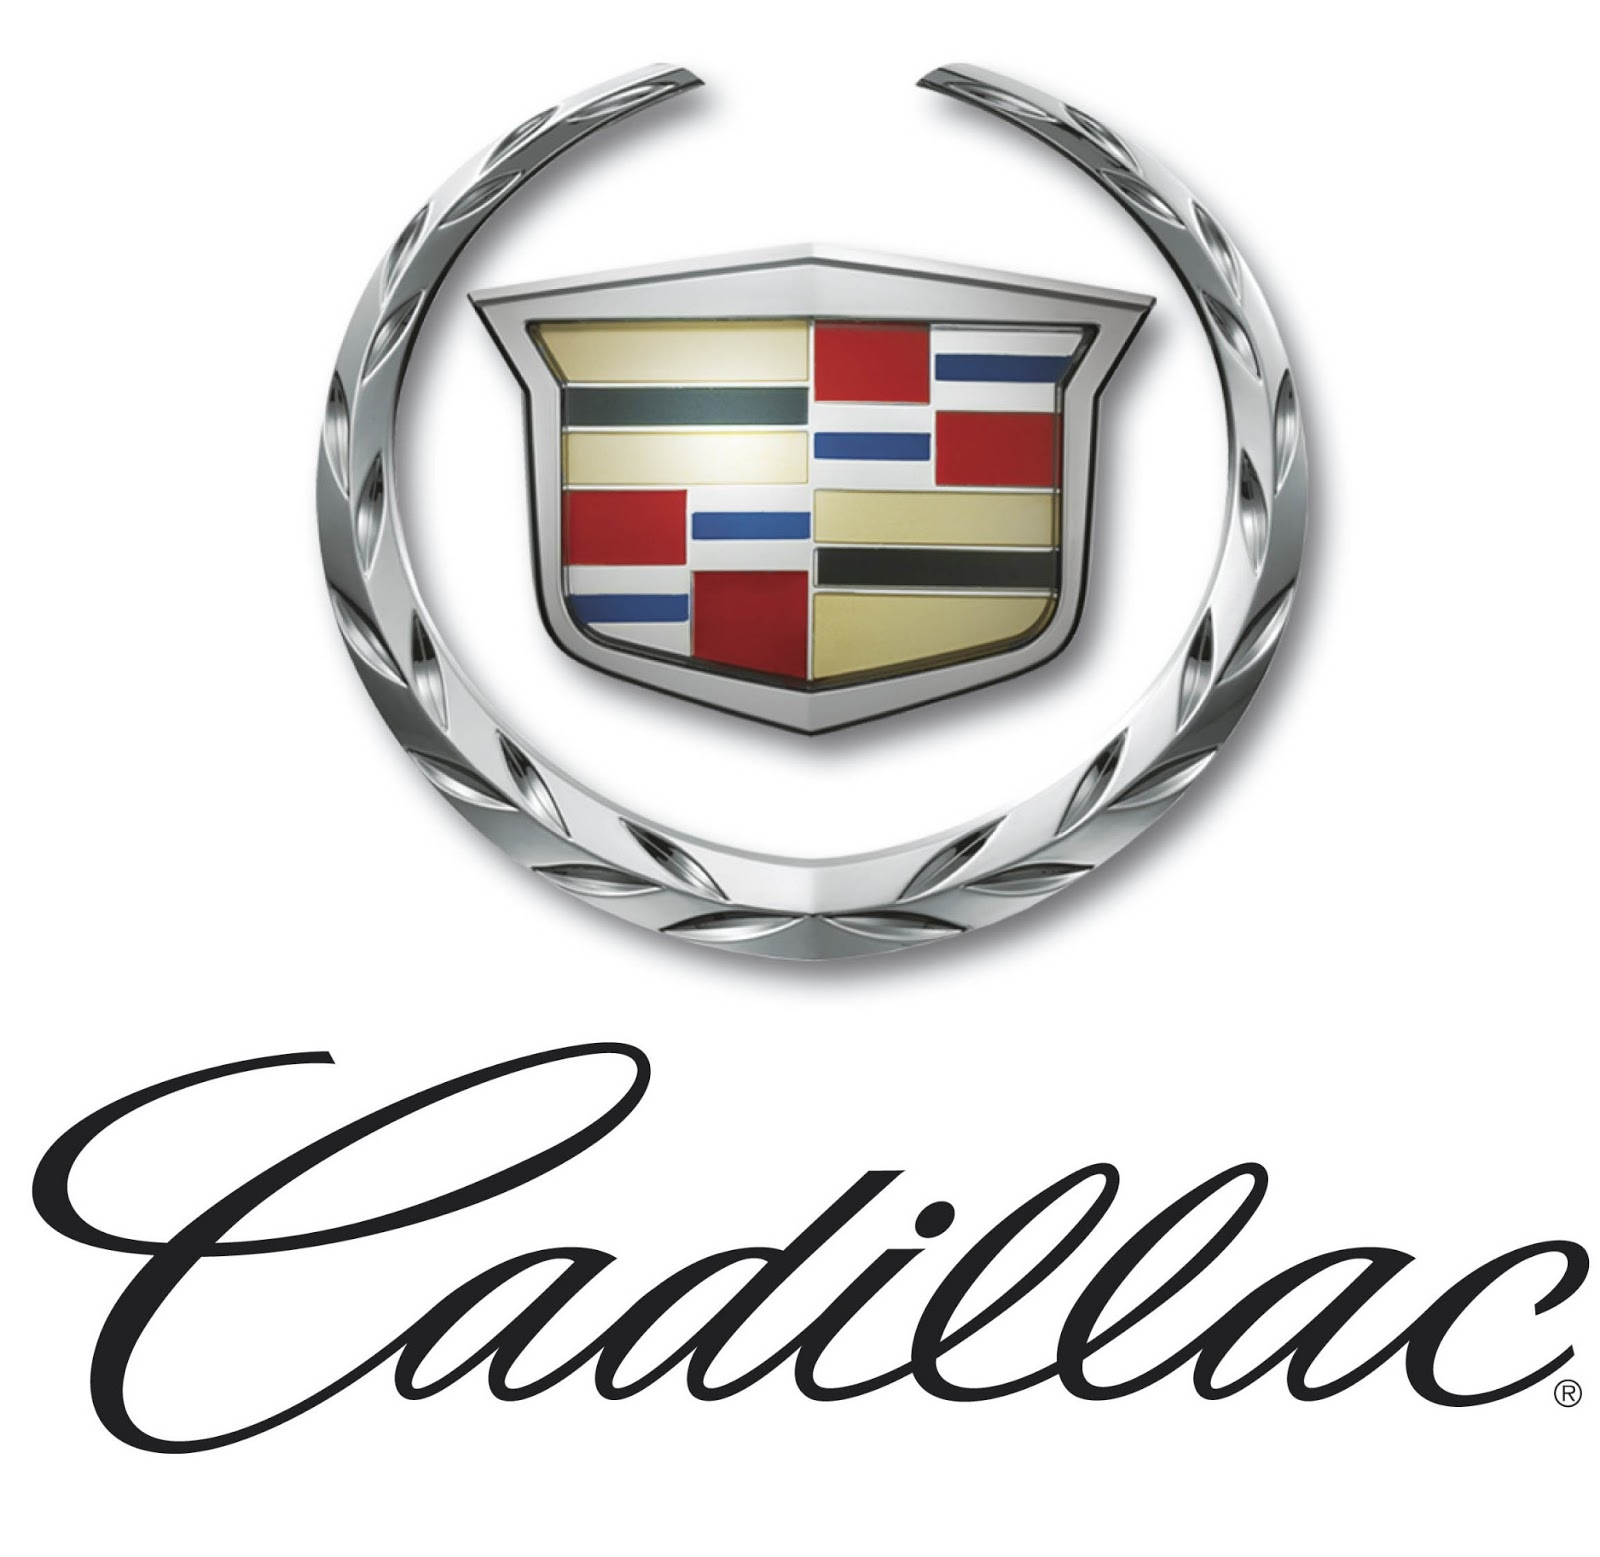 Cadillac Png Transparent Cadillac Png Images Pluspng